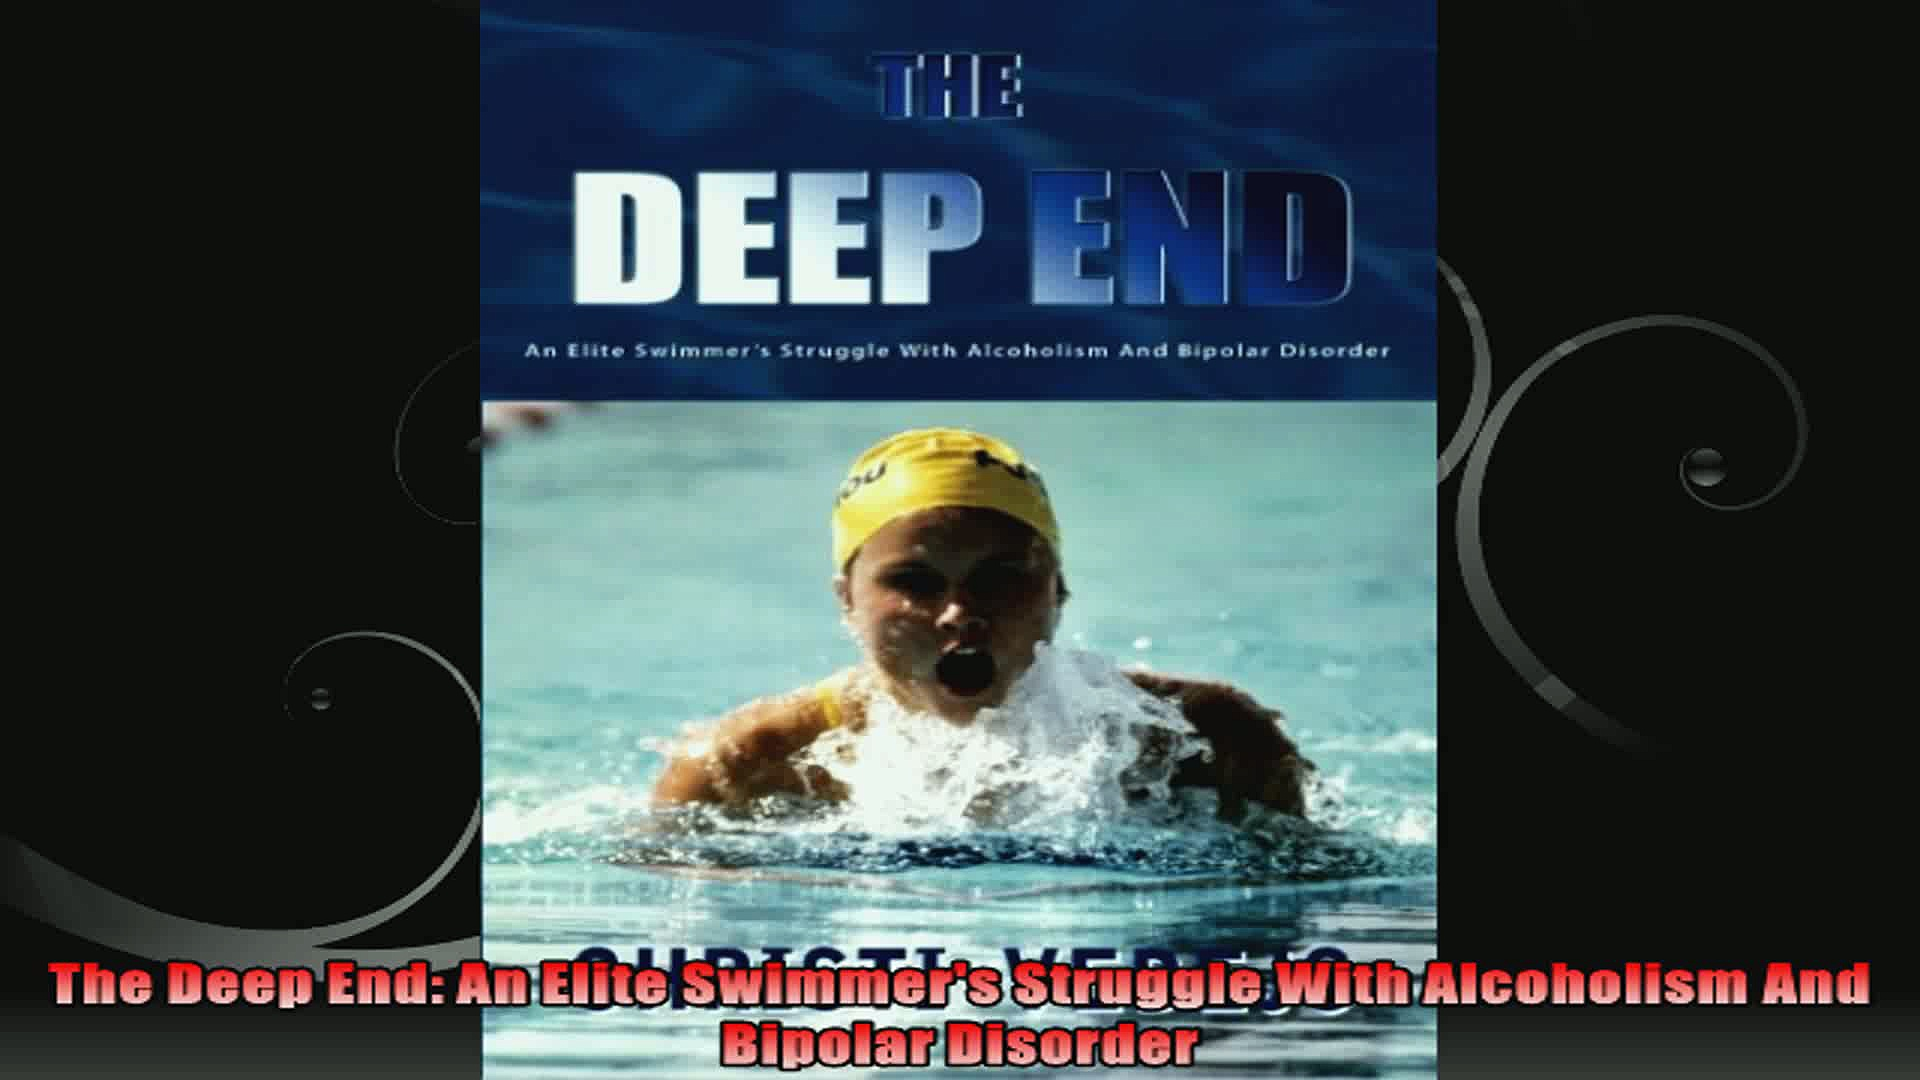 The Deep End An Elite Swimmers Struggle With Alcoholism And Bipolar Disorder